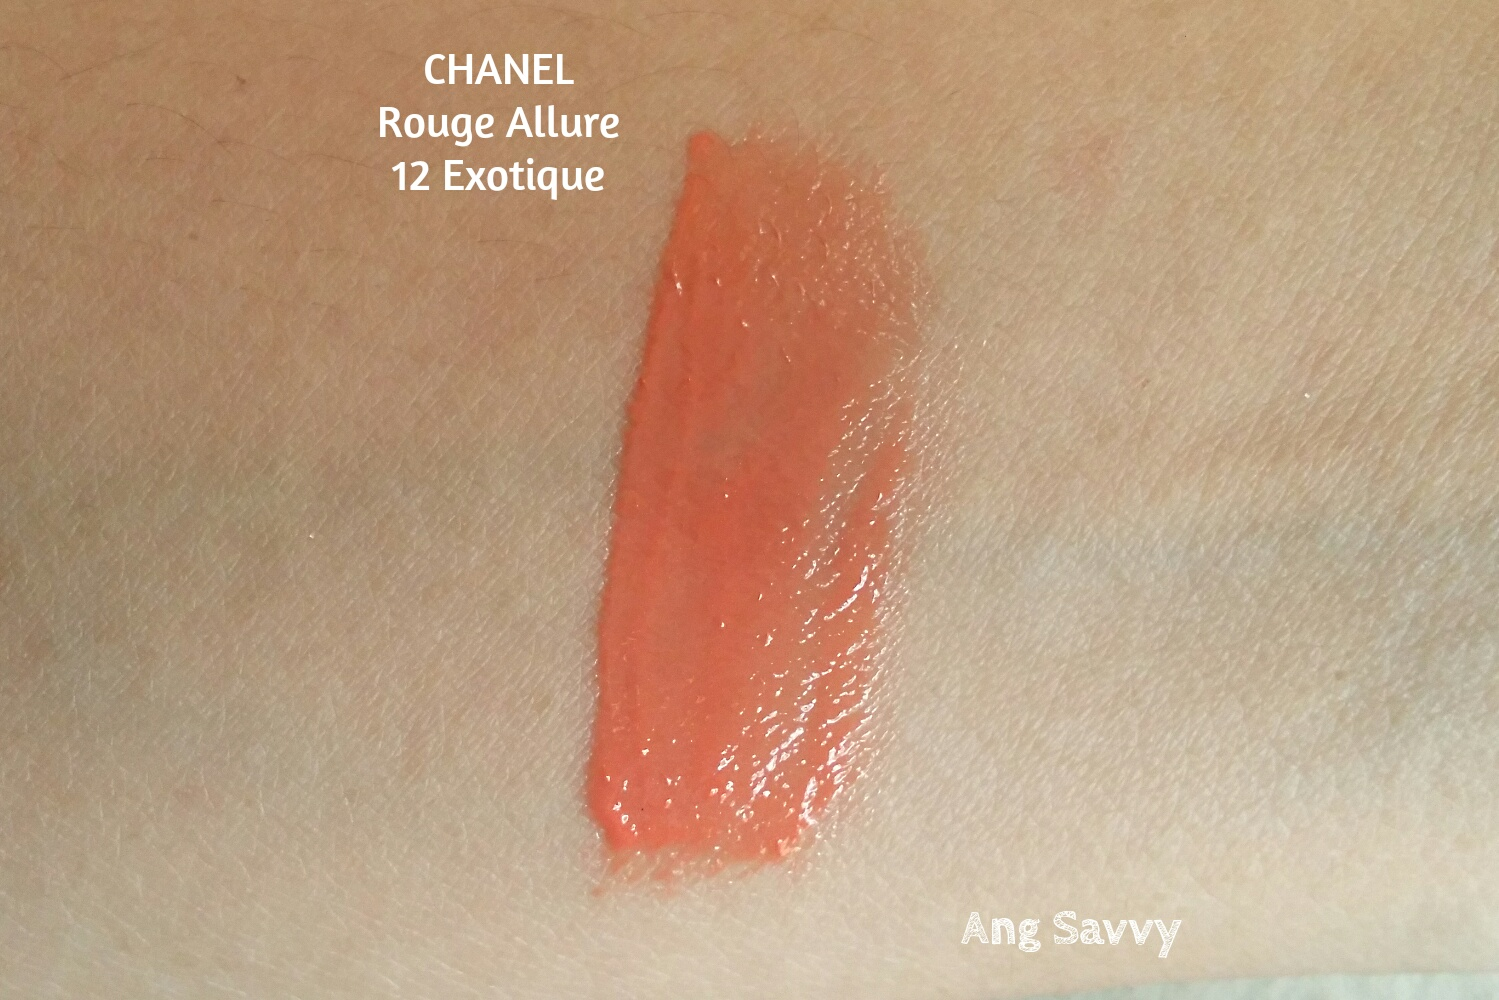 Chanel Rouge Allure Gloss in 12 Exotique Swatch